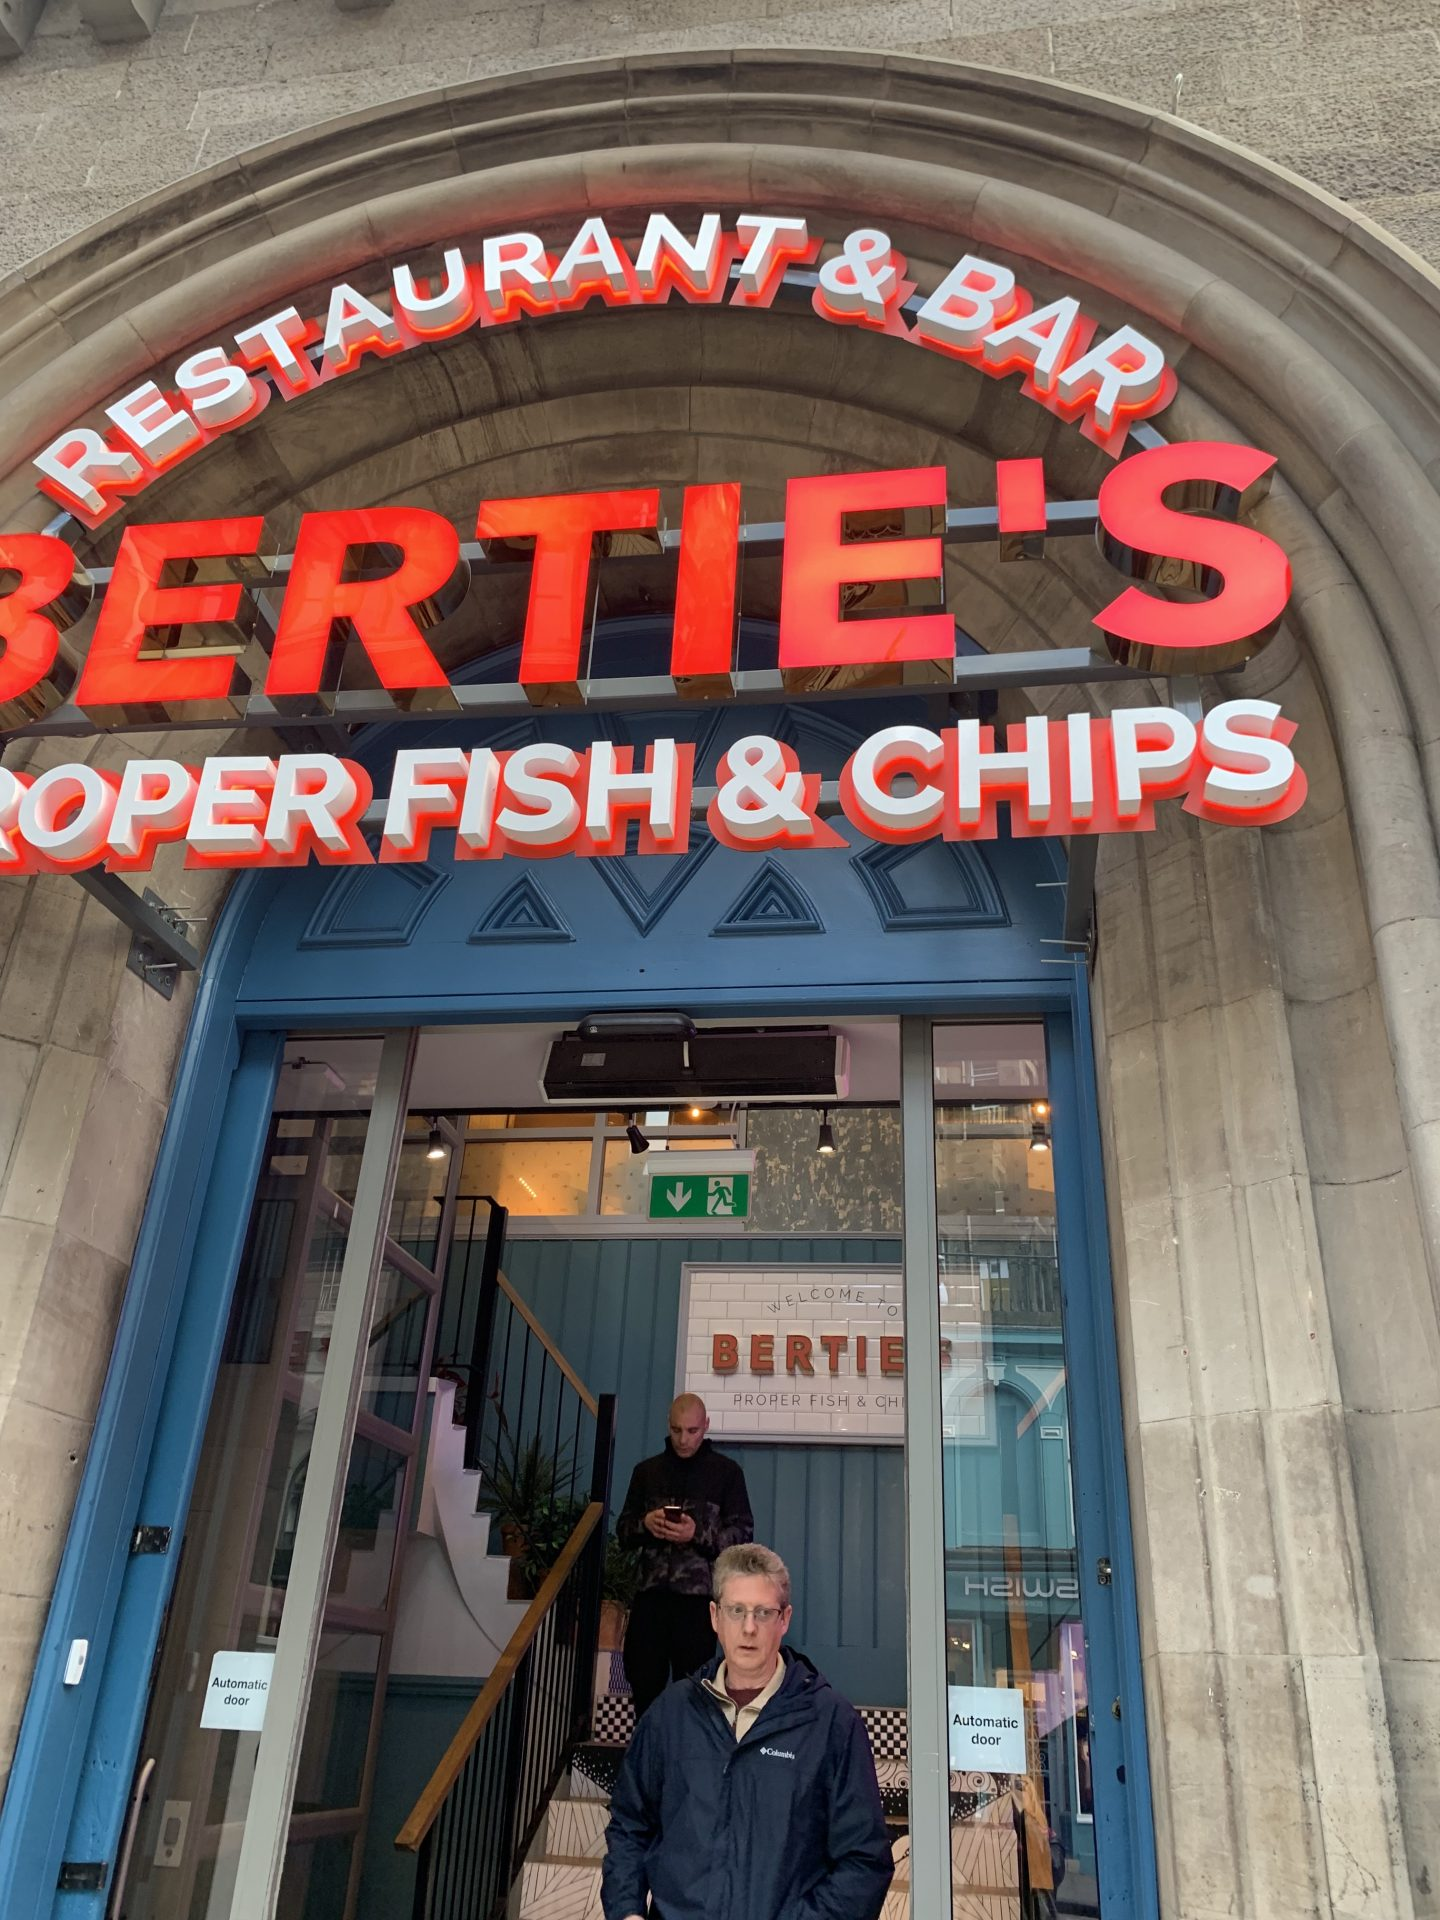 Berties Proper Fish n Chips